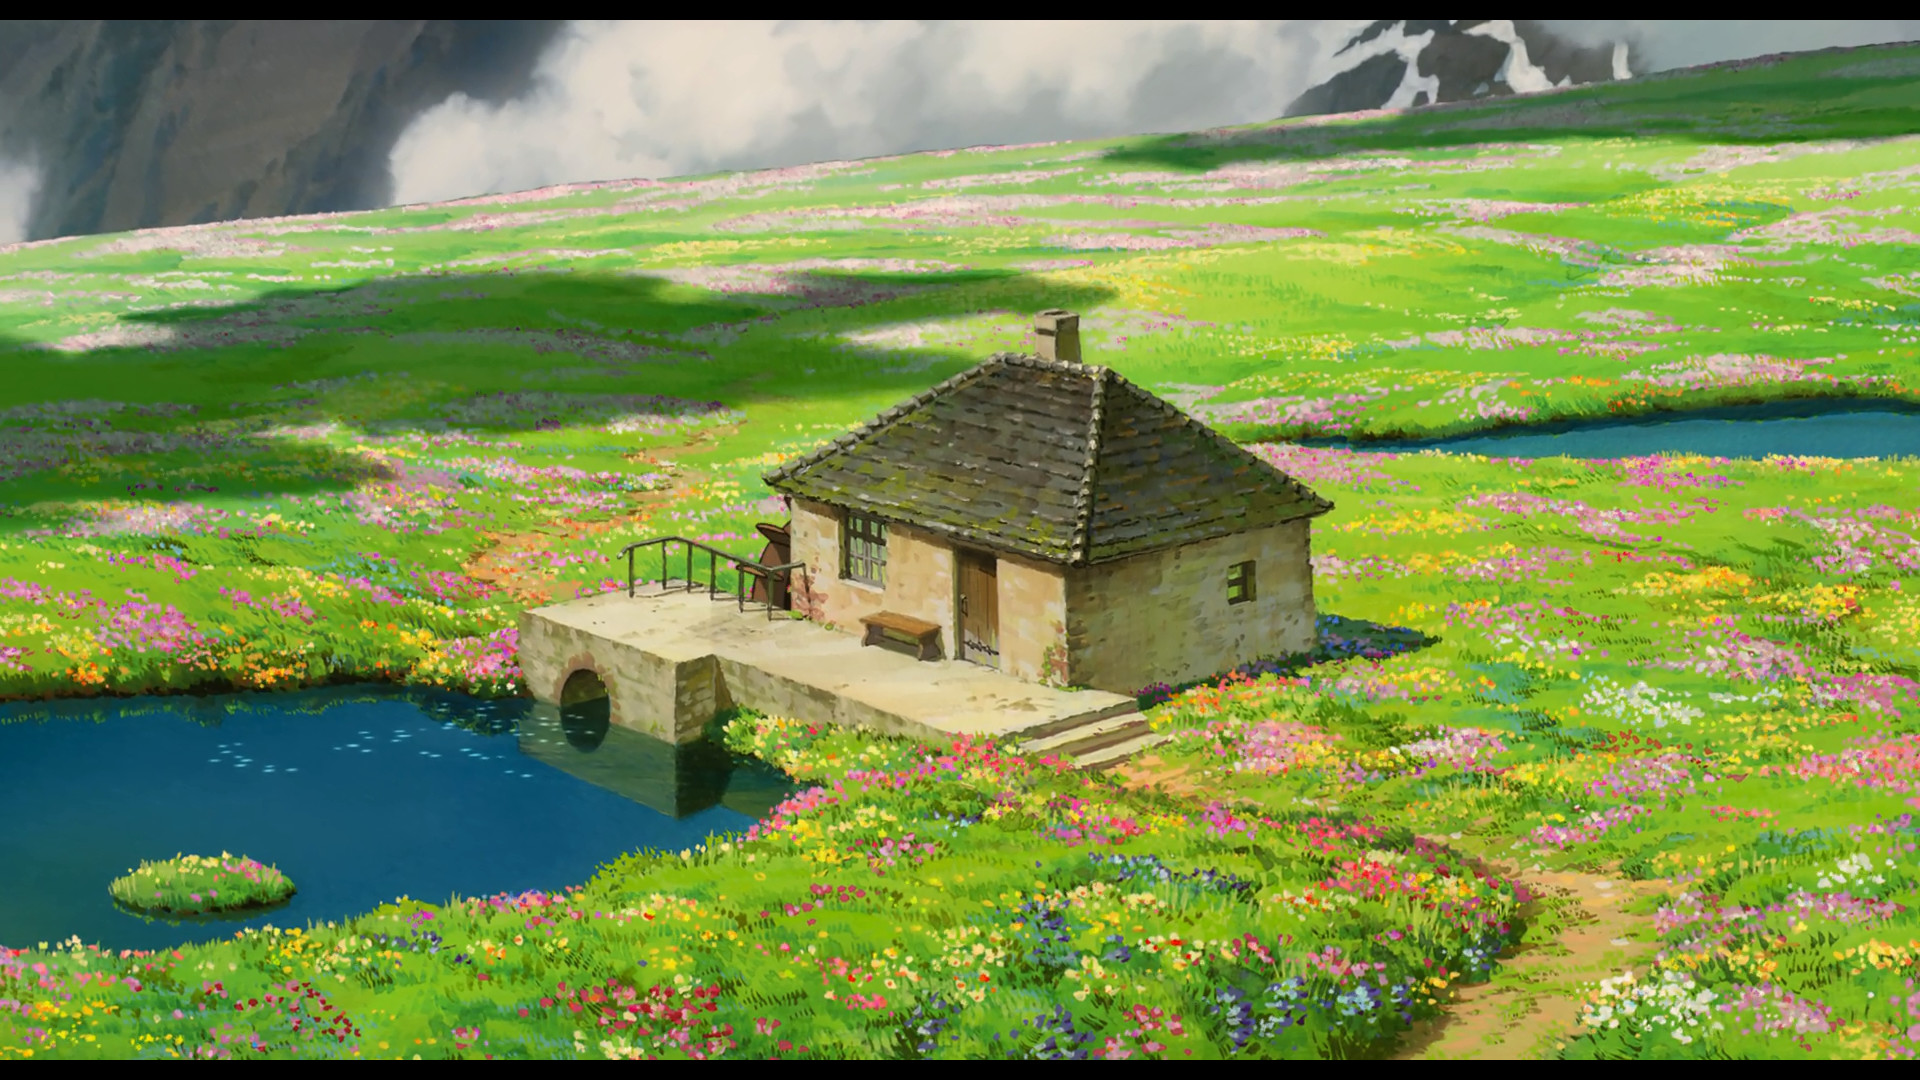 1920x1080 Anime  anime Studio Ghibli landscape house water field cottage  flowers peaceful Howl's Moving Castle